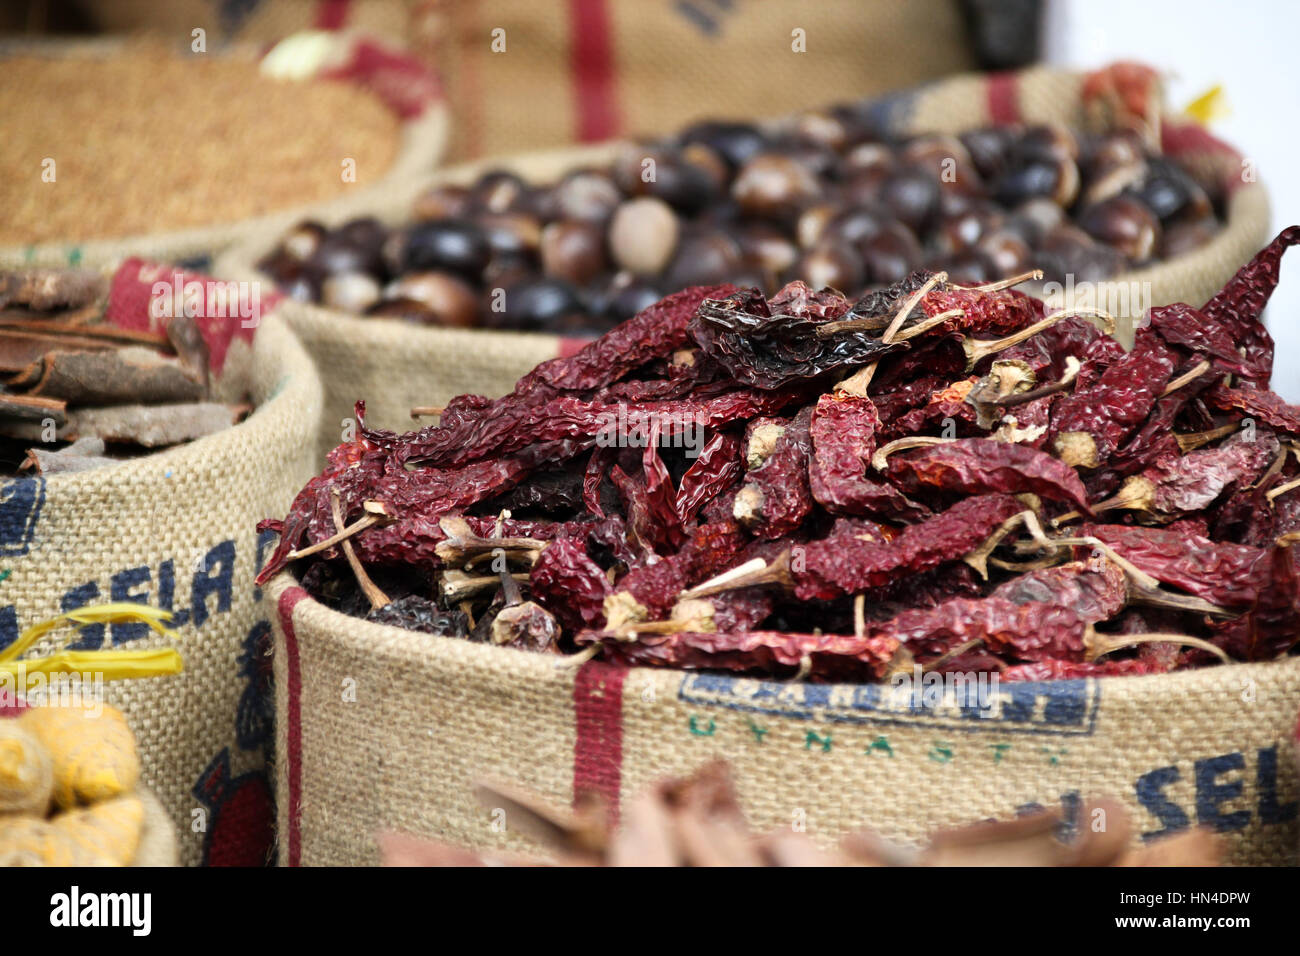 Sacks of fresh spices on sale in Cochin, Kerala. - Stock Image